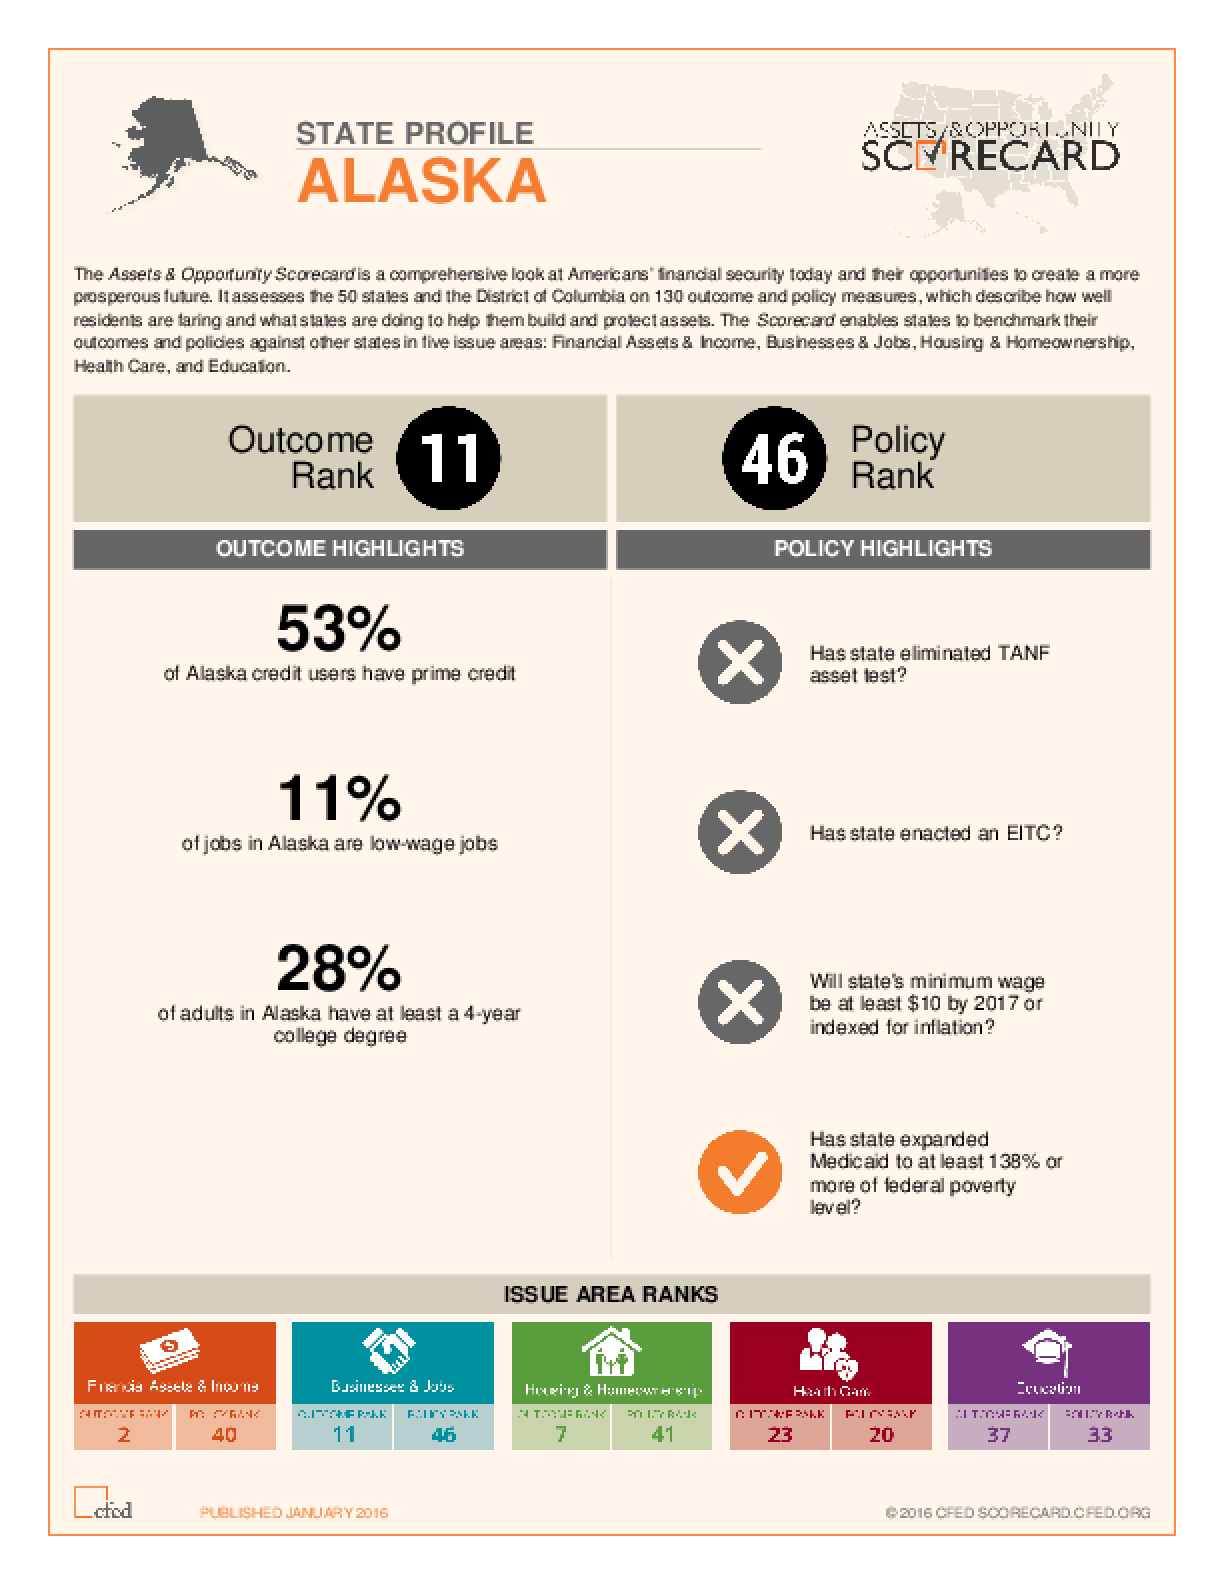 State Profile Alaska: Assets and Opportunity Scorecard